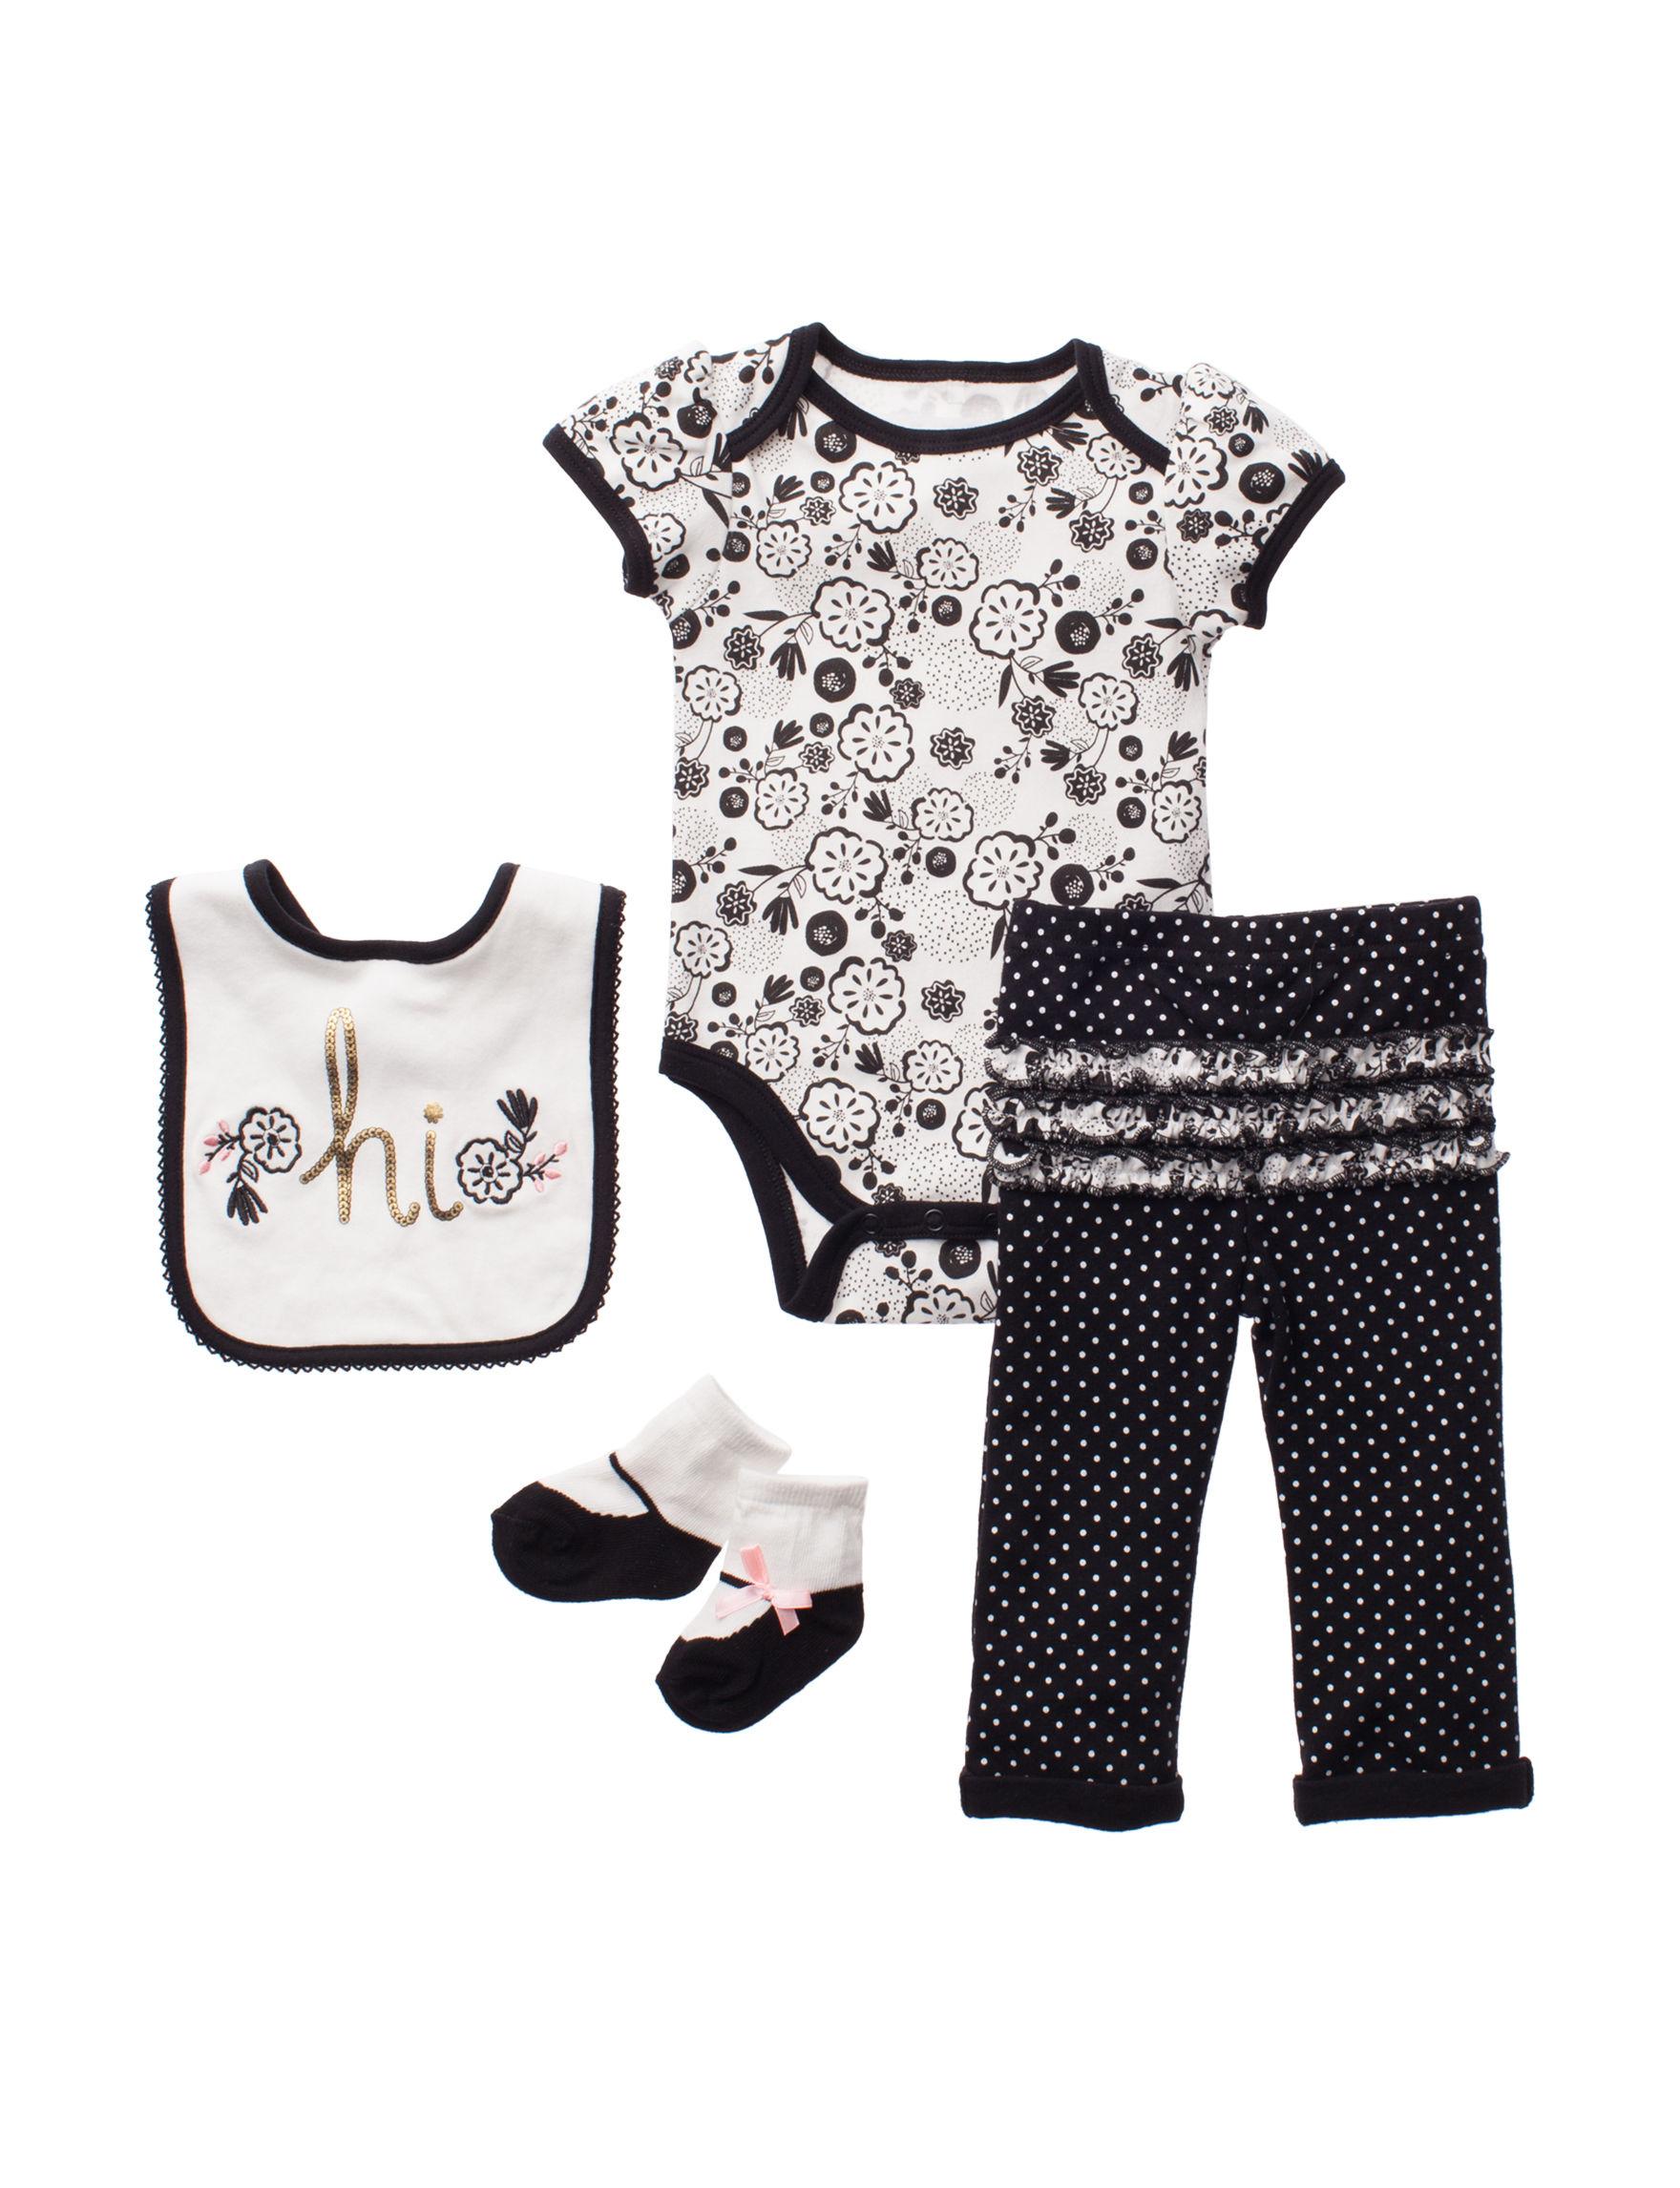 Baby Gear Black / White